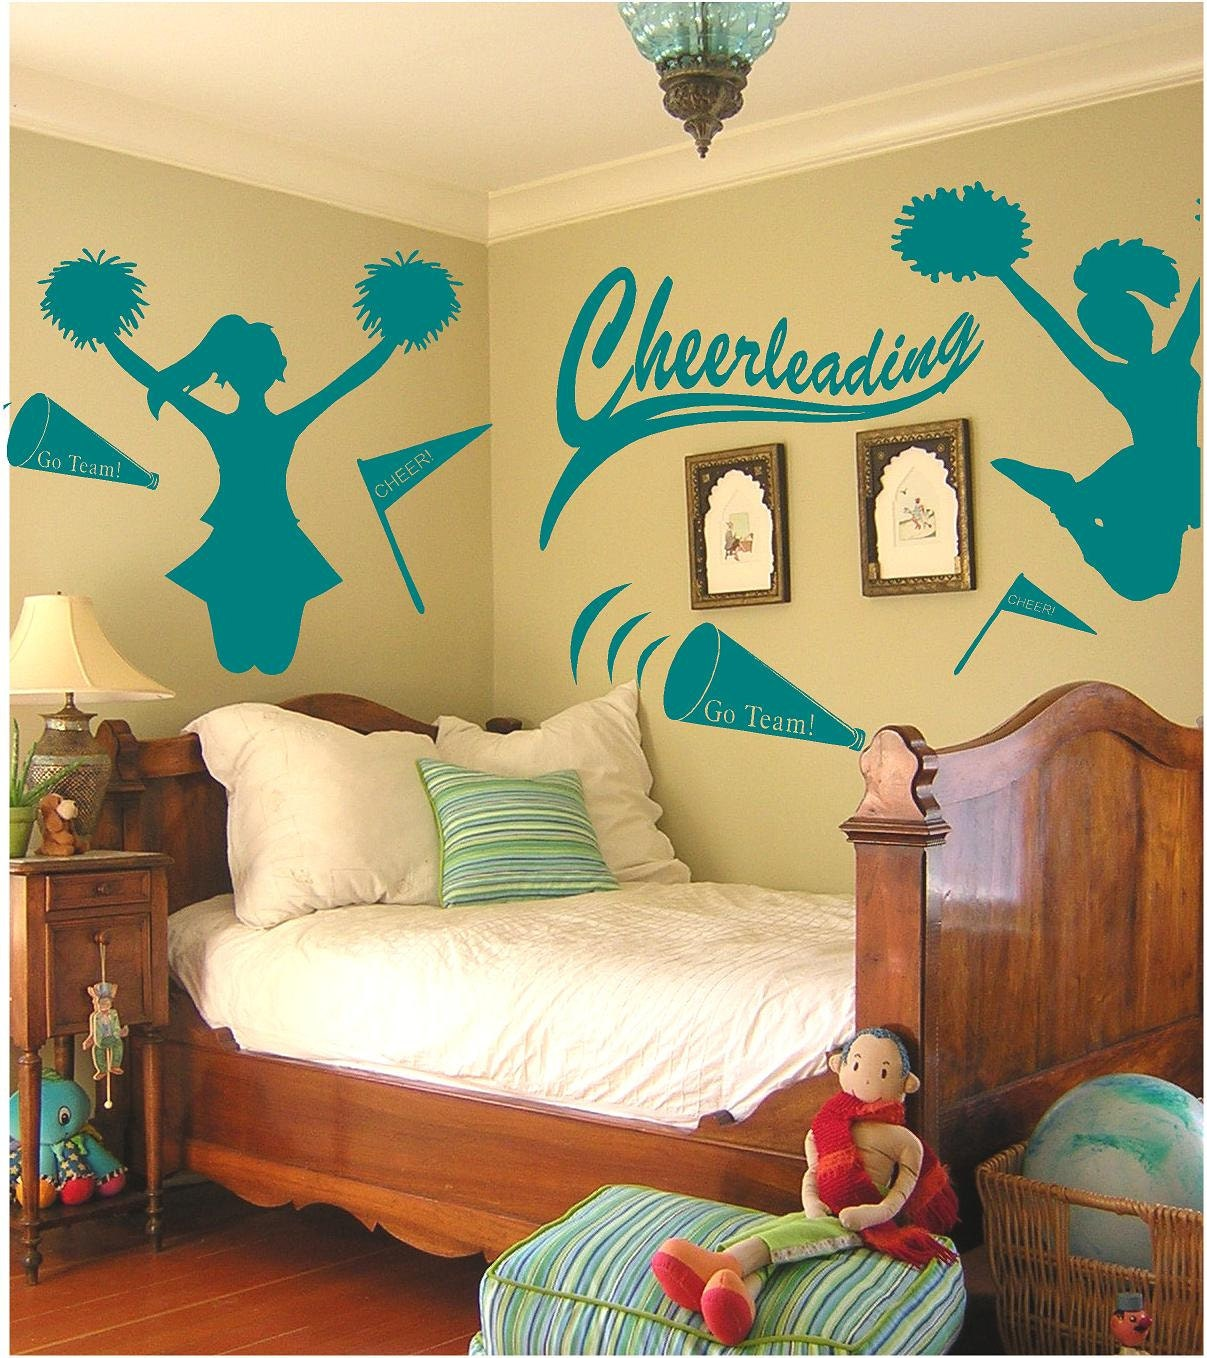 Cheerleading wall decals set cheerleading by for Cheerleader wall mural